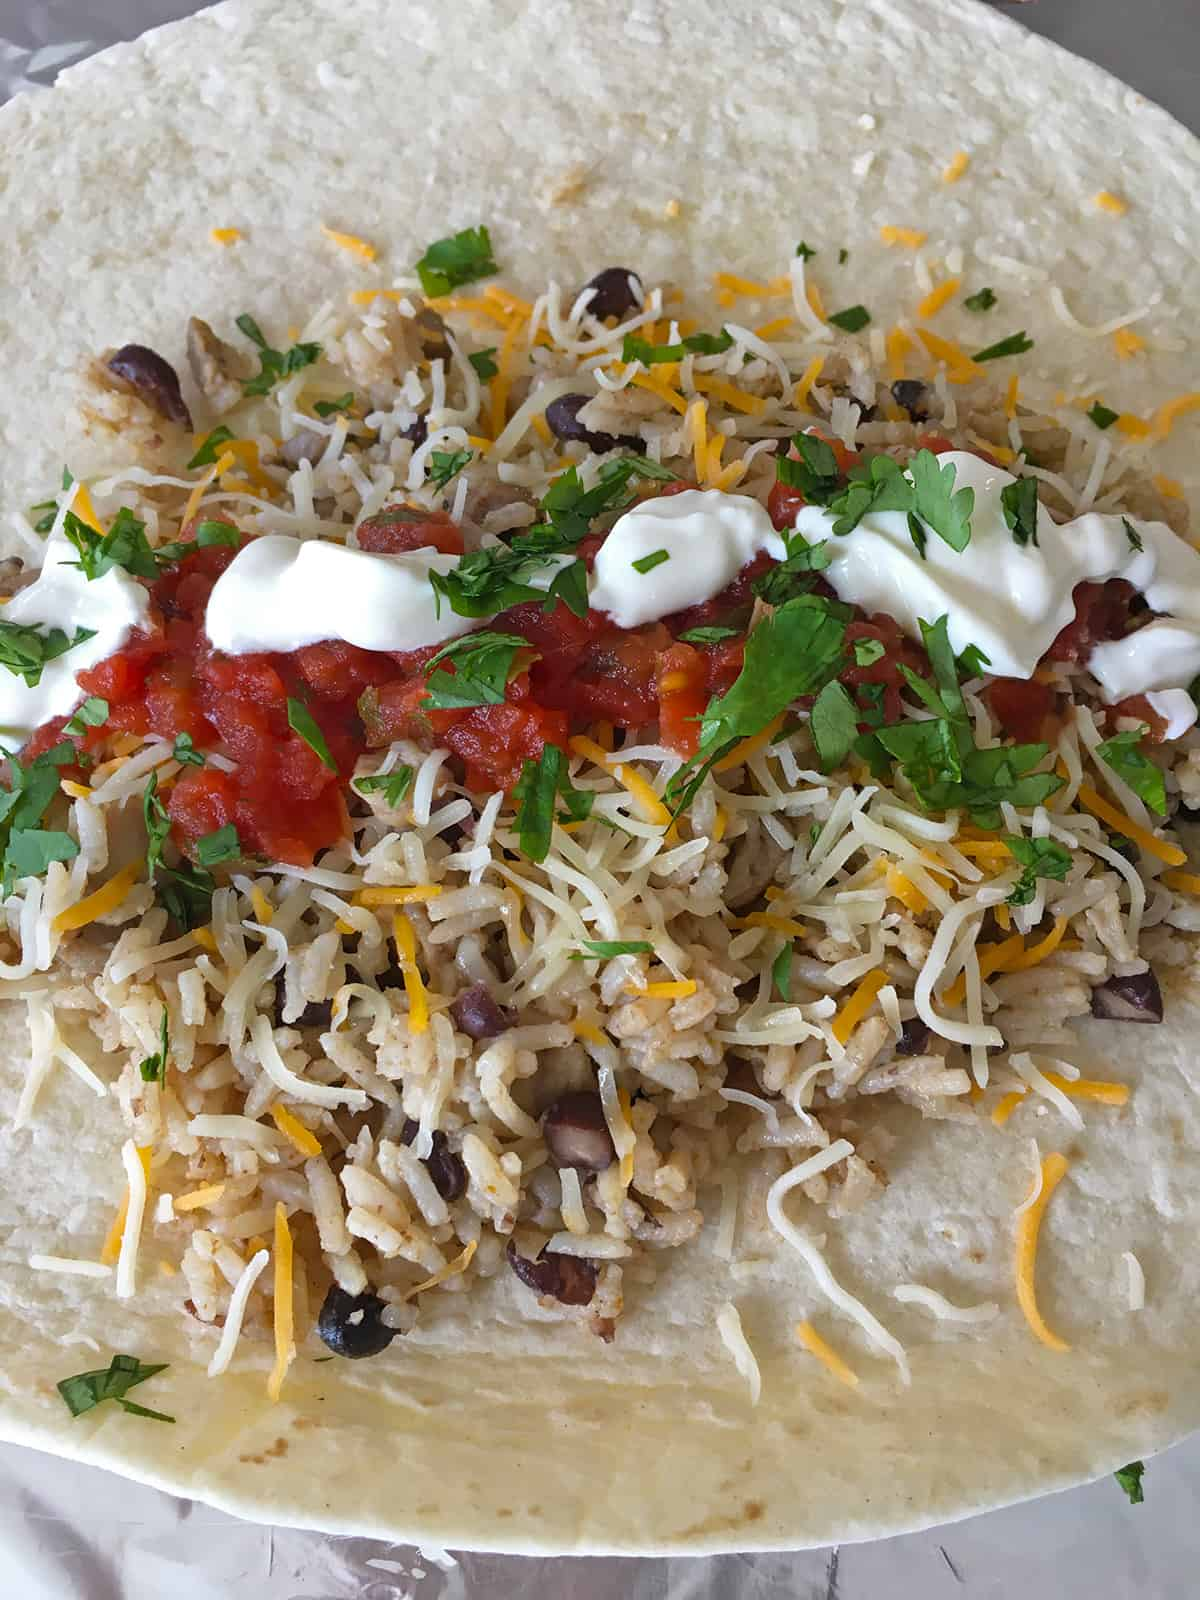 Topping chicken burritos with shredded cheese, salsa and sour cream just before rolling up